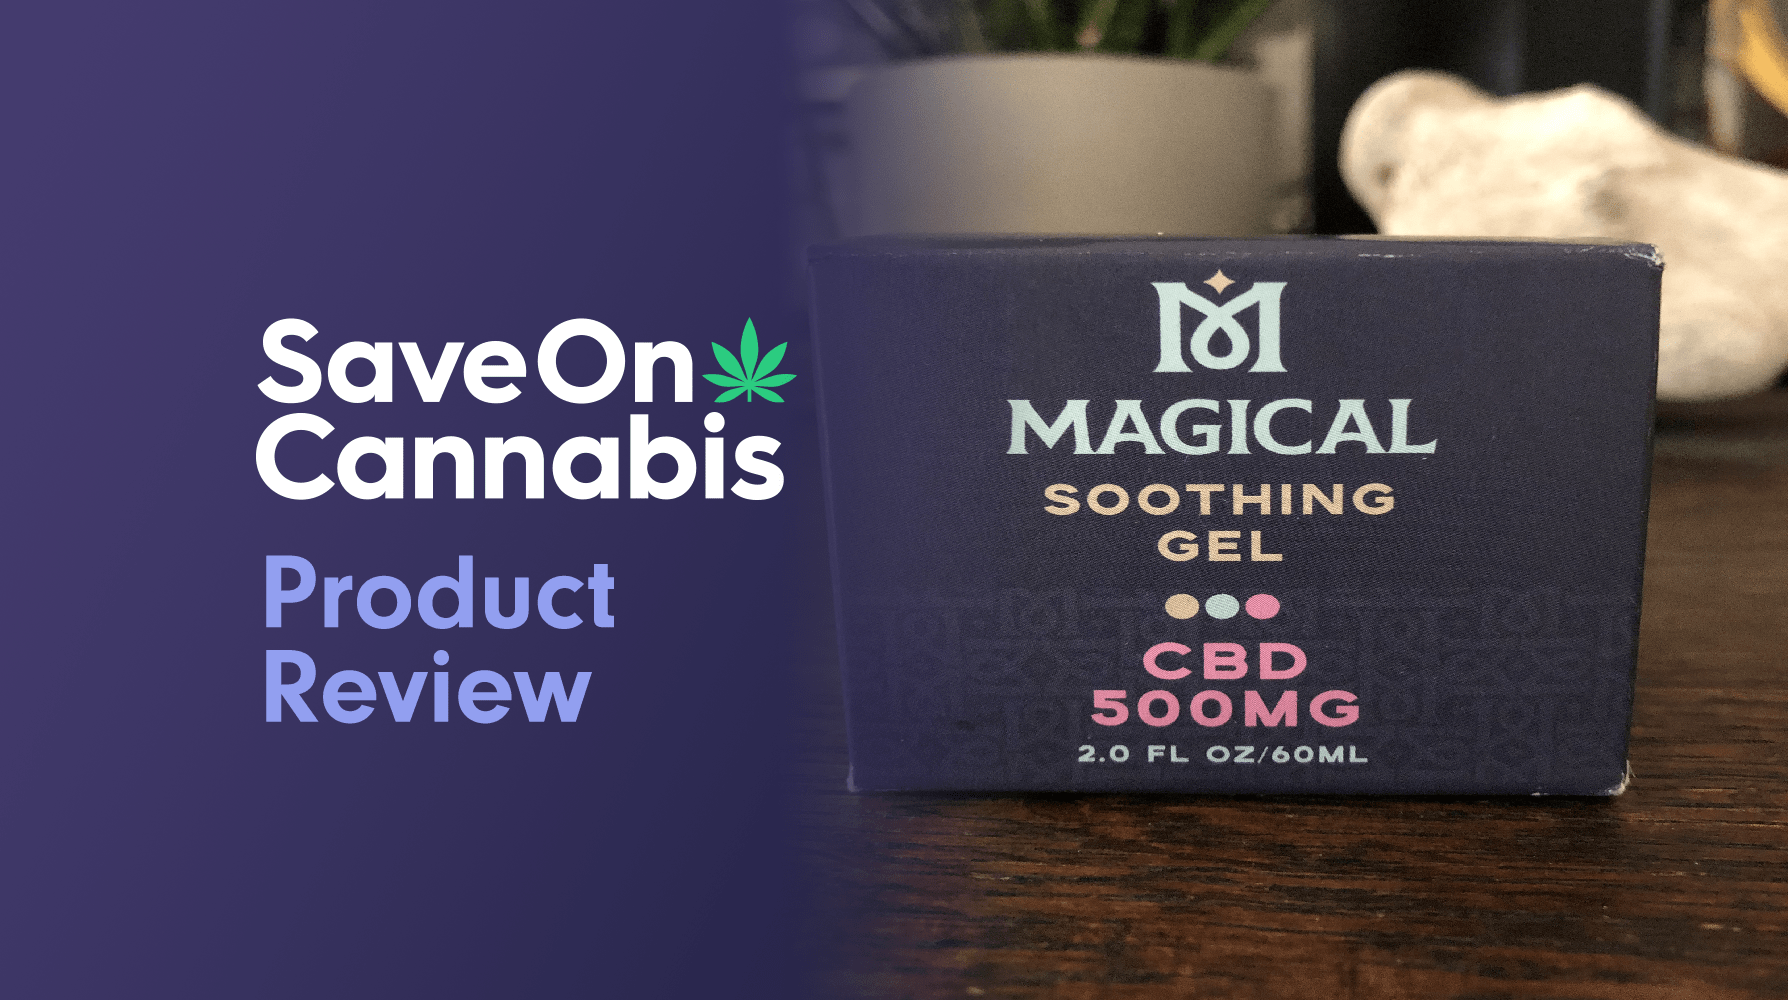 Magical CBD Soothing Gel Save On Cannabis Review Website